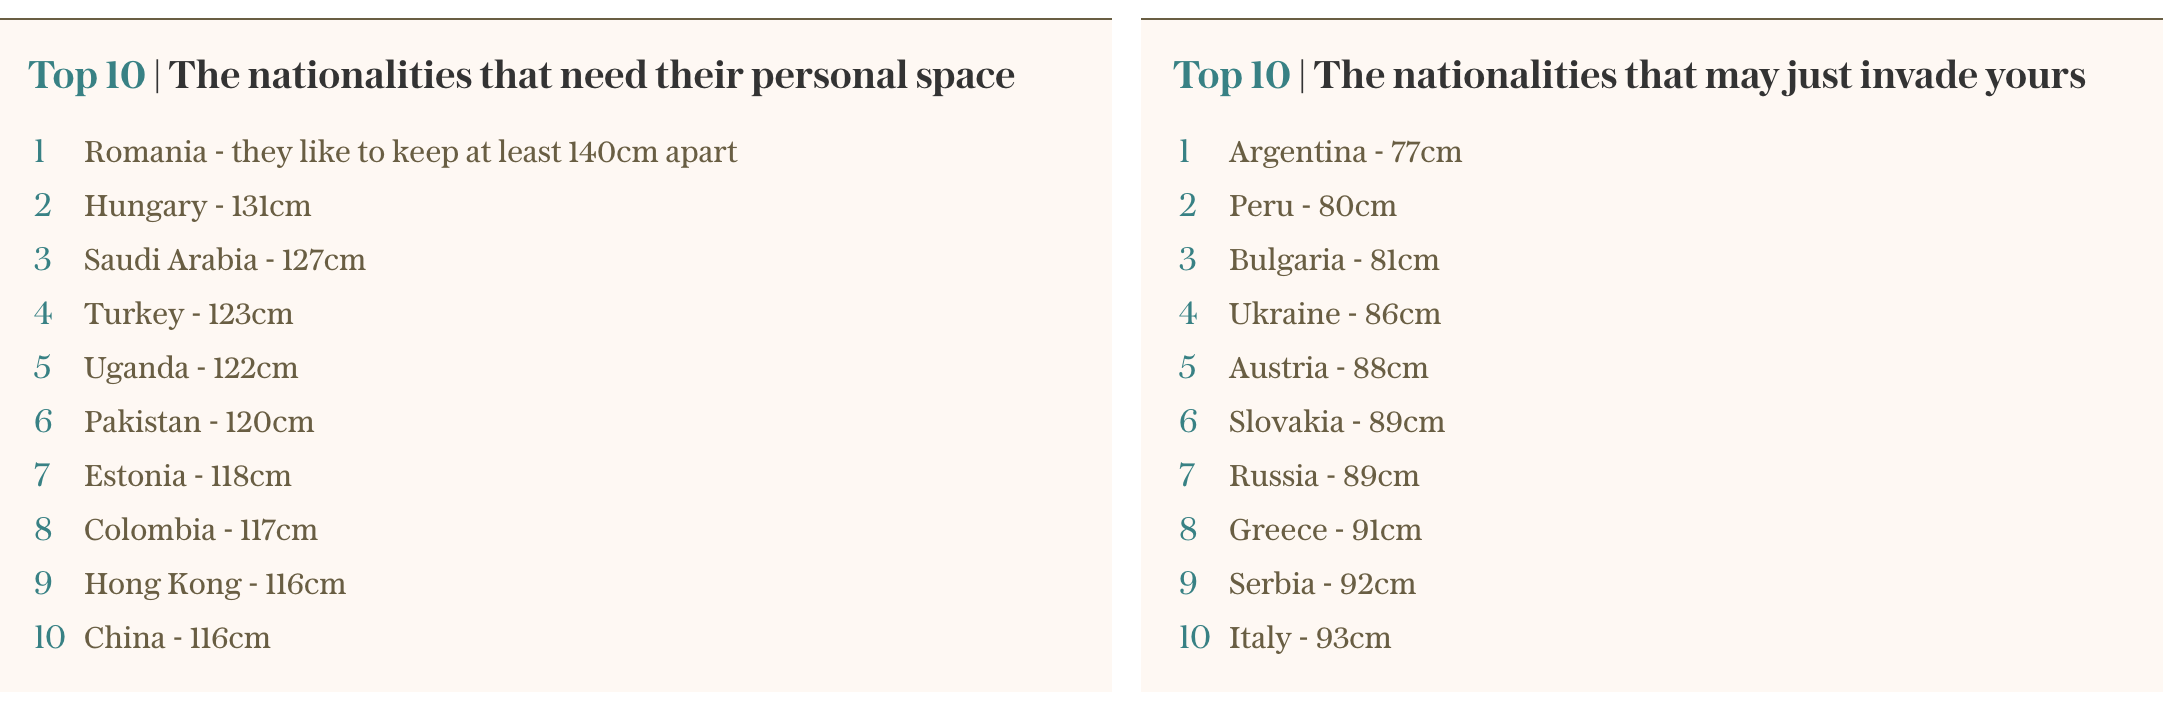 Top10 Countries and Personal Space